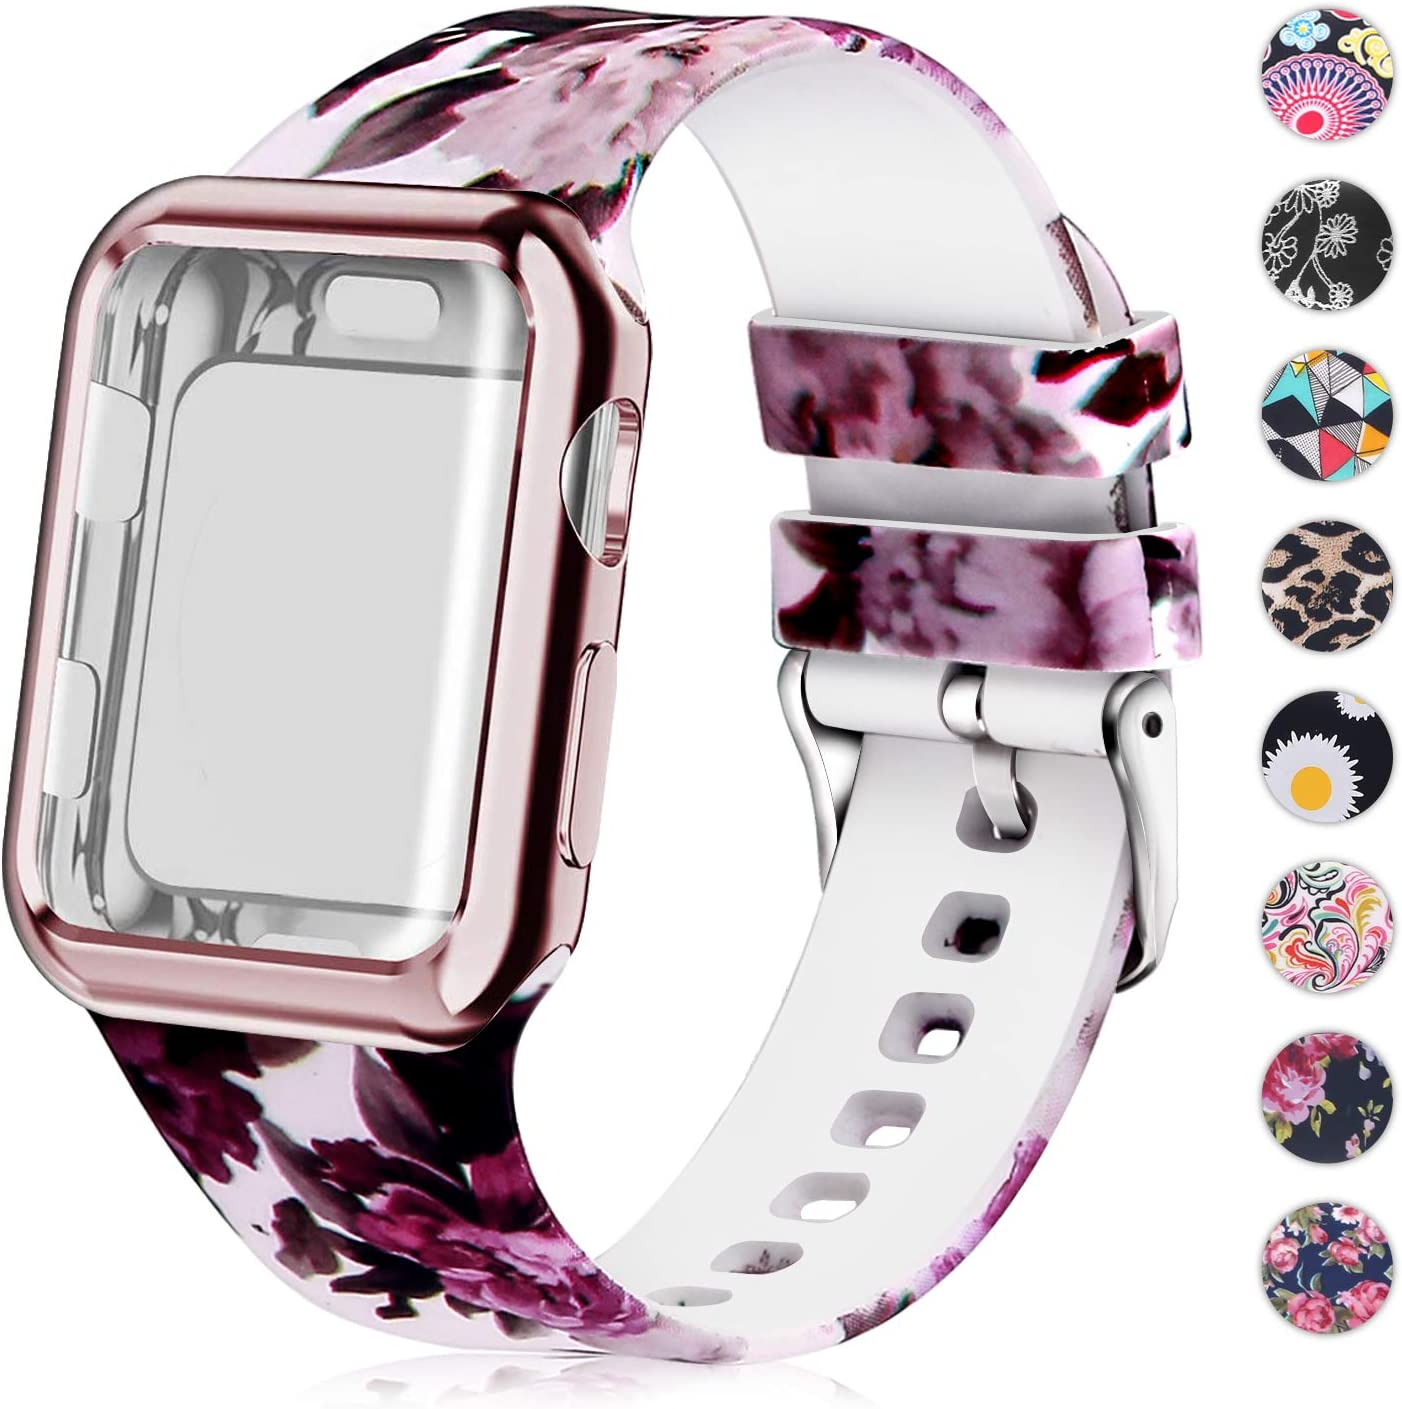 Compatible for Apple Watch Band 42mm Women with Screen Protector Case, Soft Silicone Sport Wristband for Apple Watch iwatch Series 3 2 1 (42mm, Purple Flower)